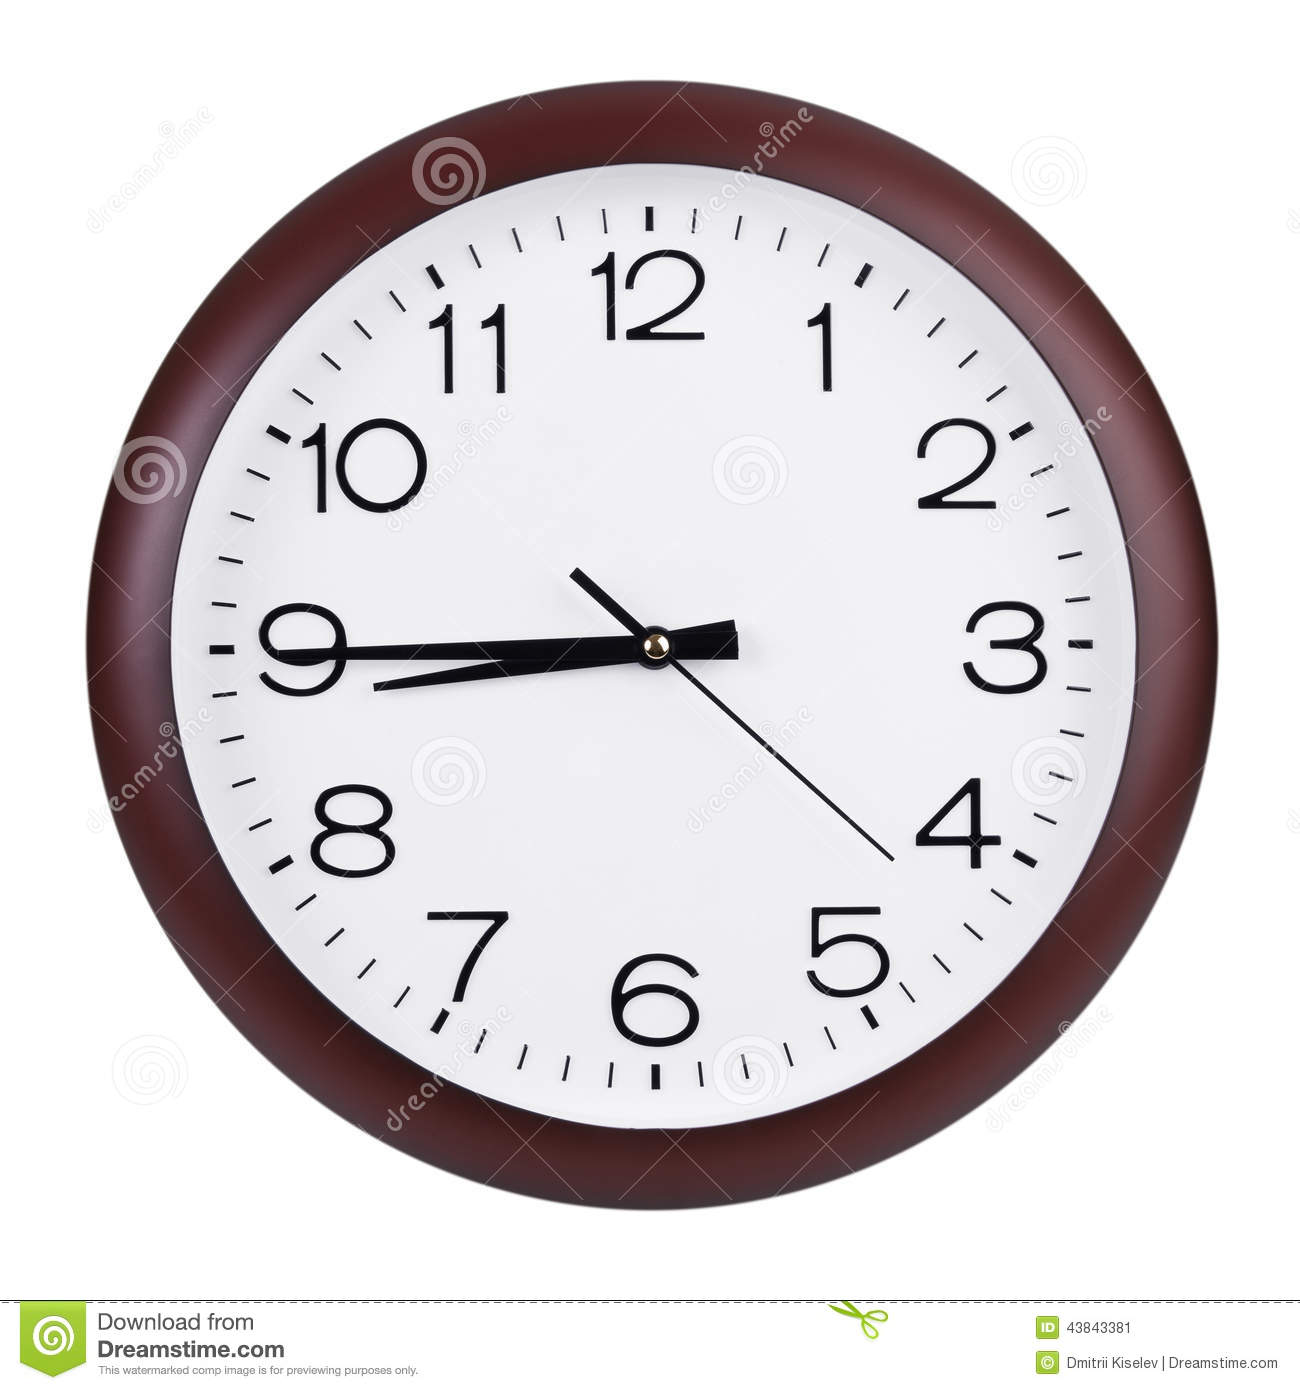 Quarter To Nine On A Dial Stock Photo Image 43843381